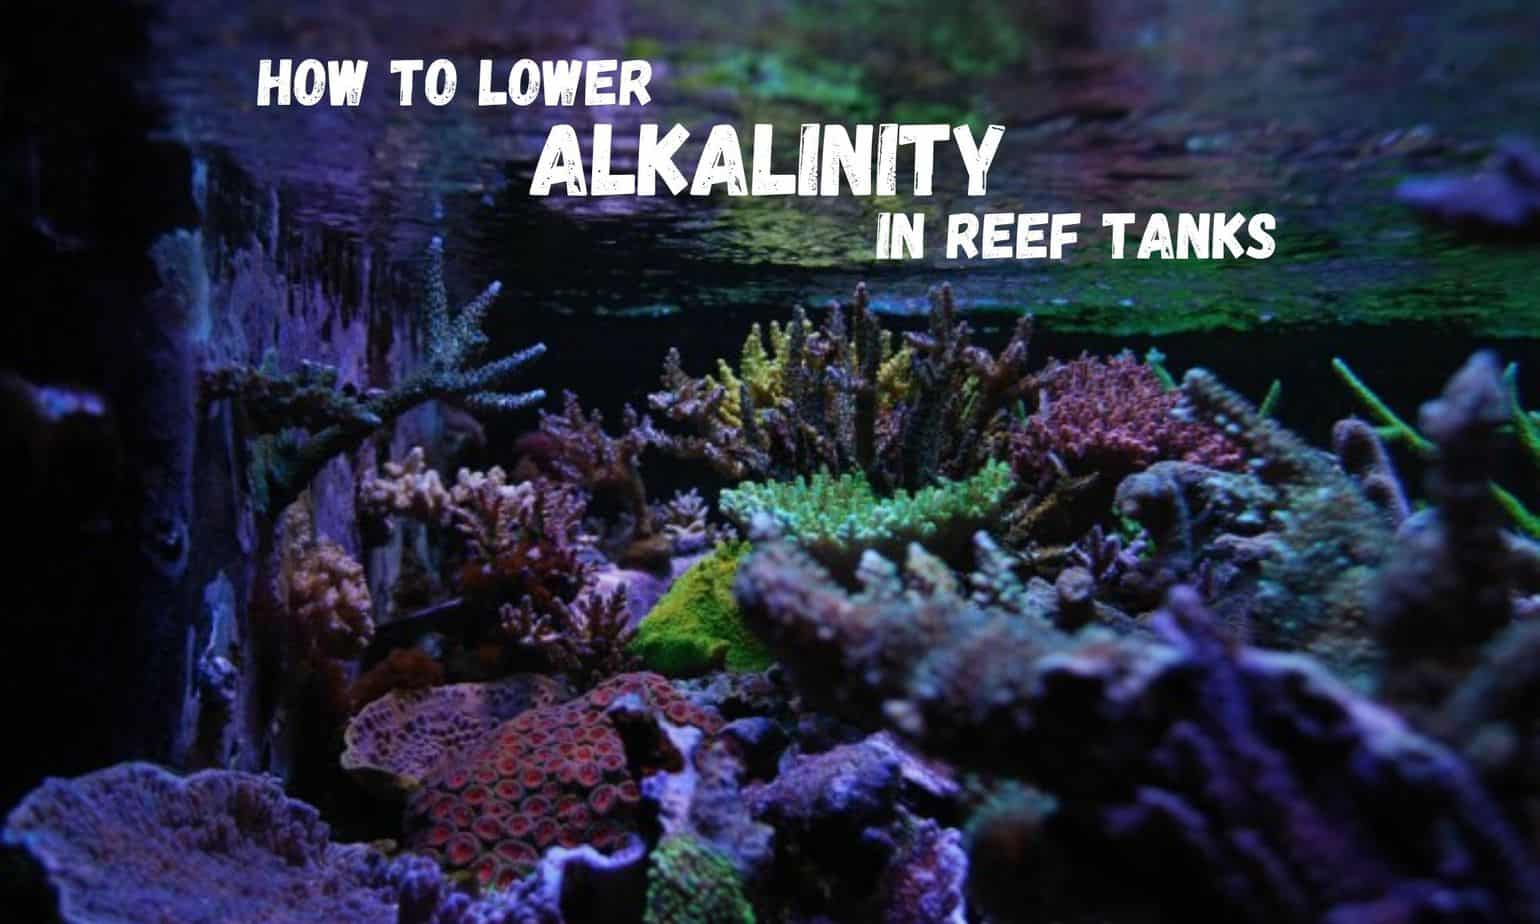 how to lower alkalinity in reef tanks